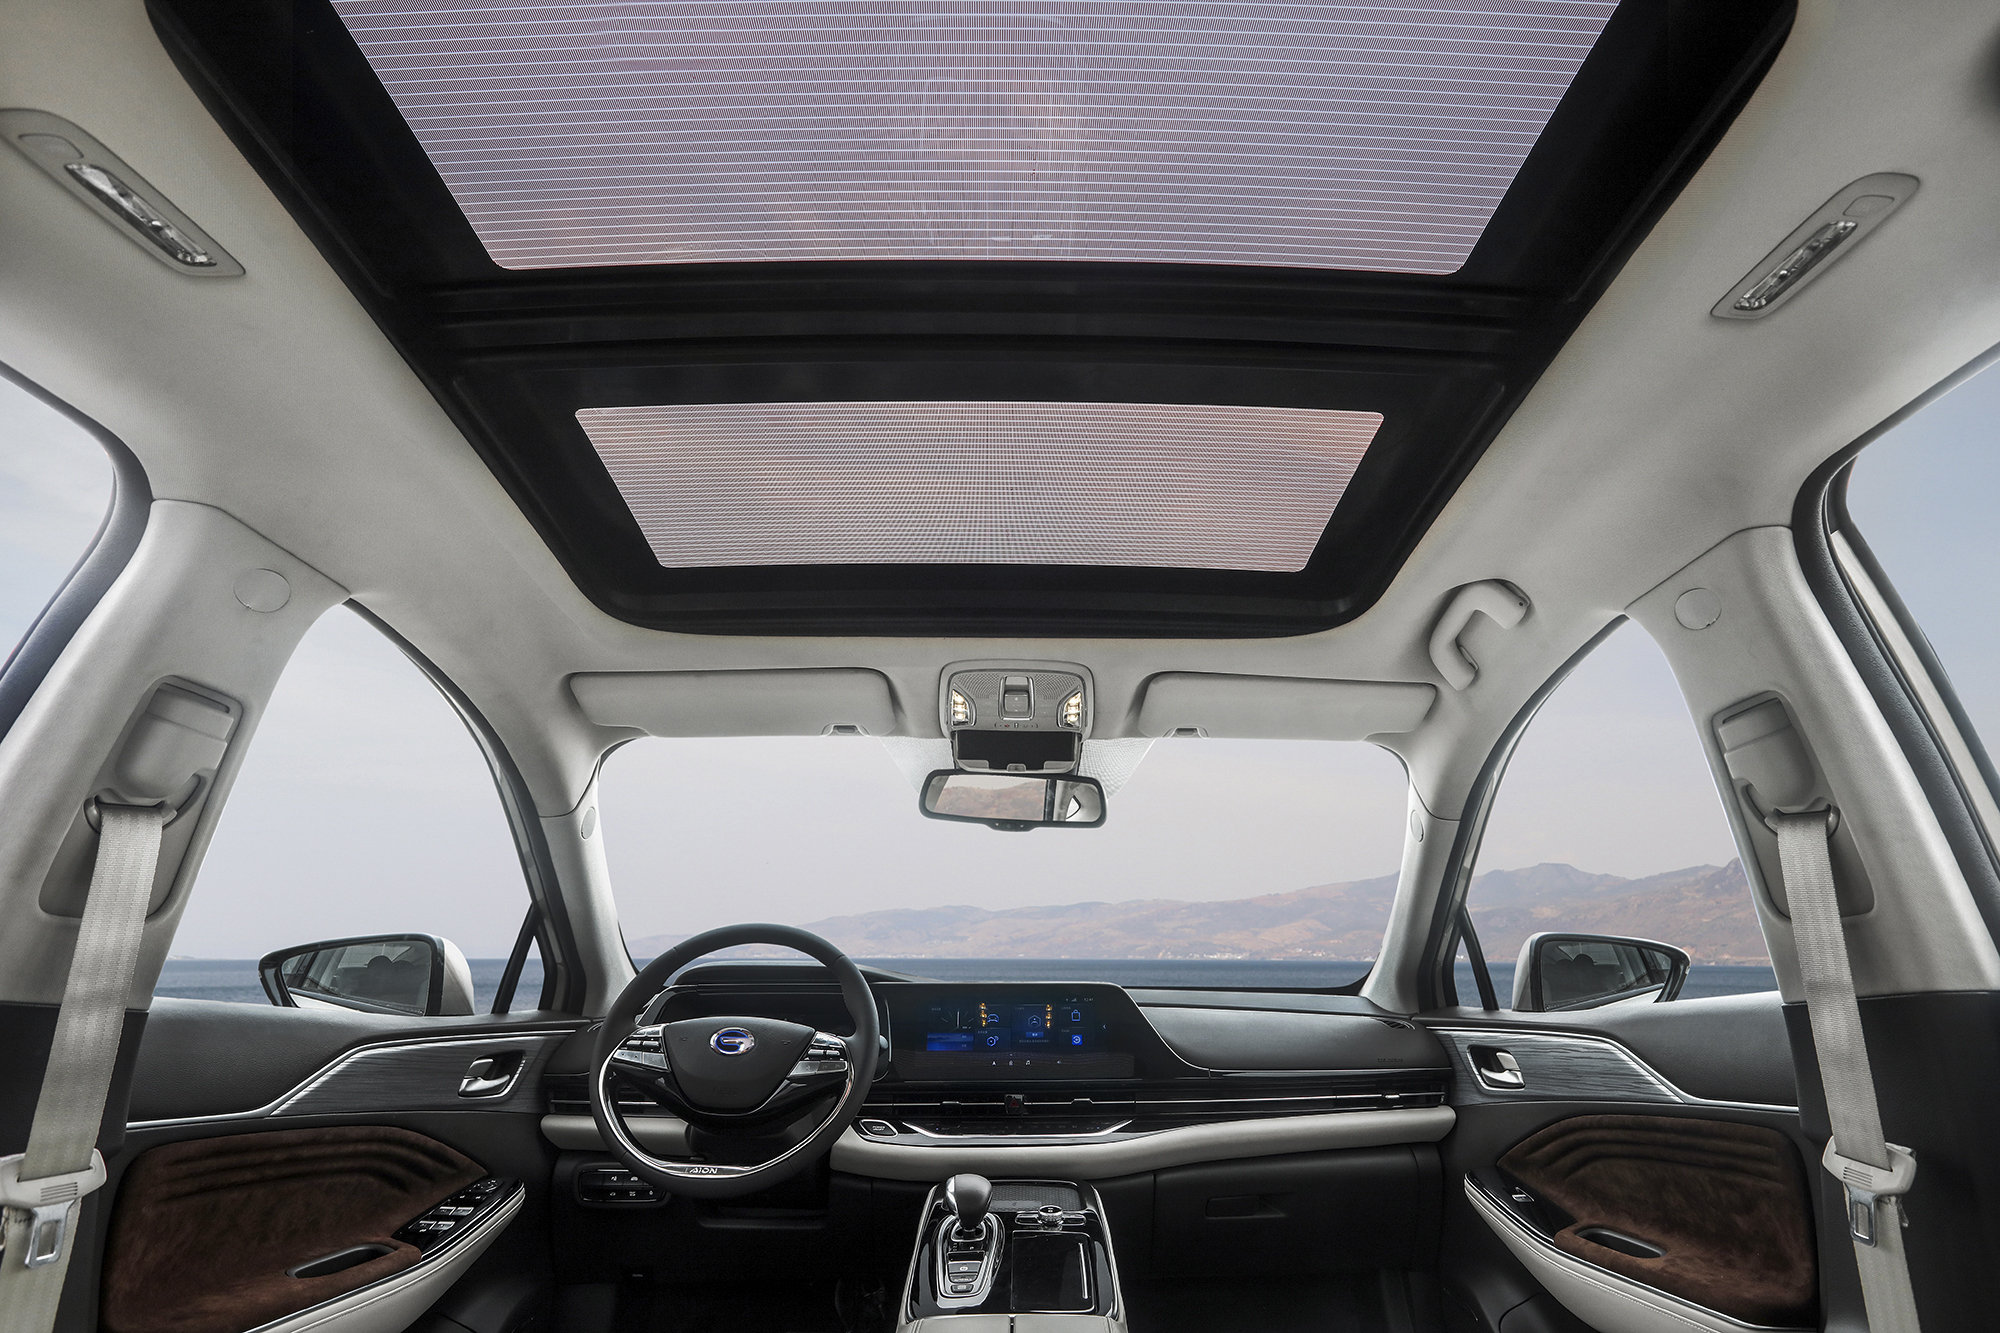 Solar Panels On Sunroof Provides Energy-efficient Internal ventilation And Circulation System